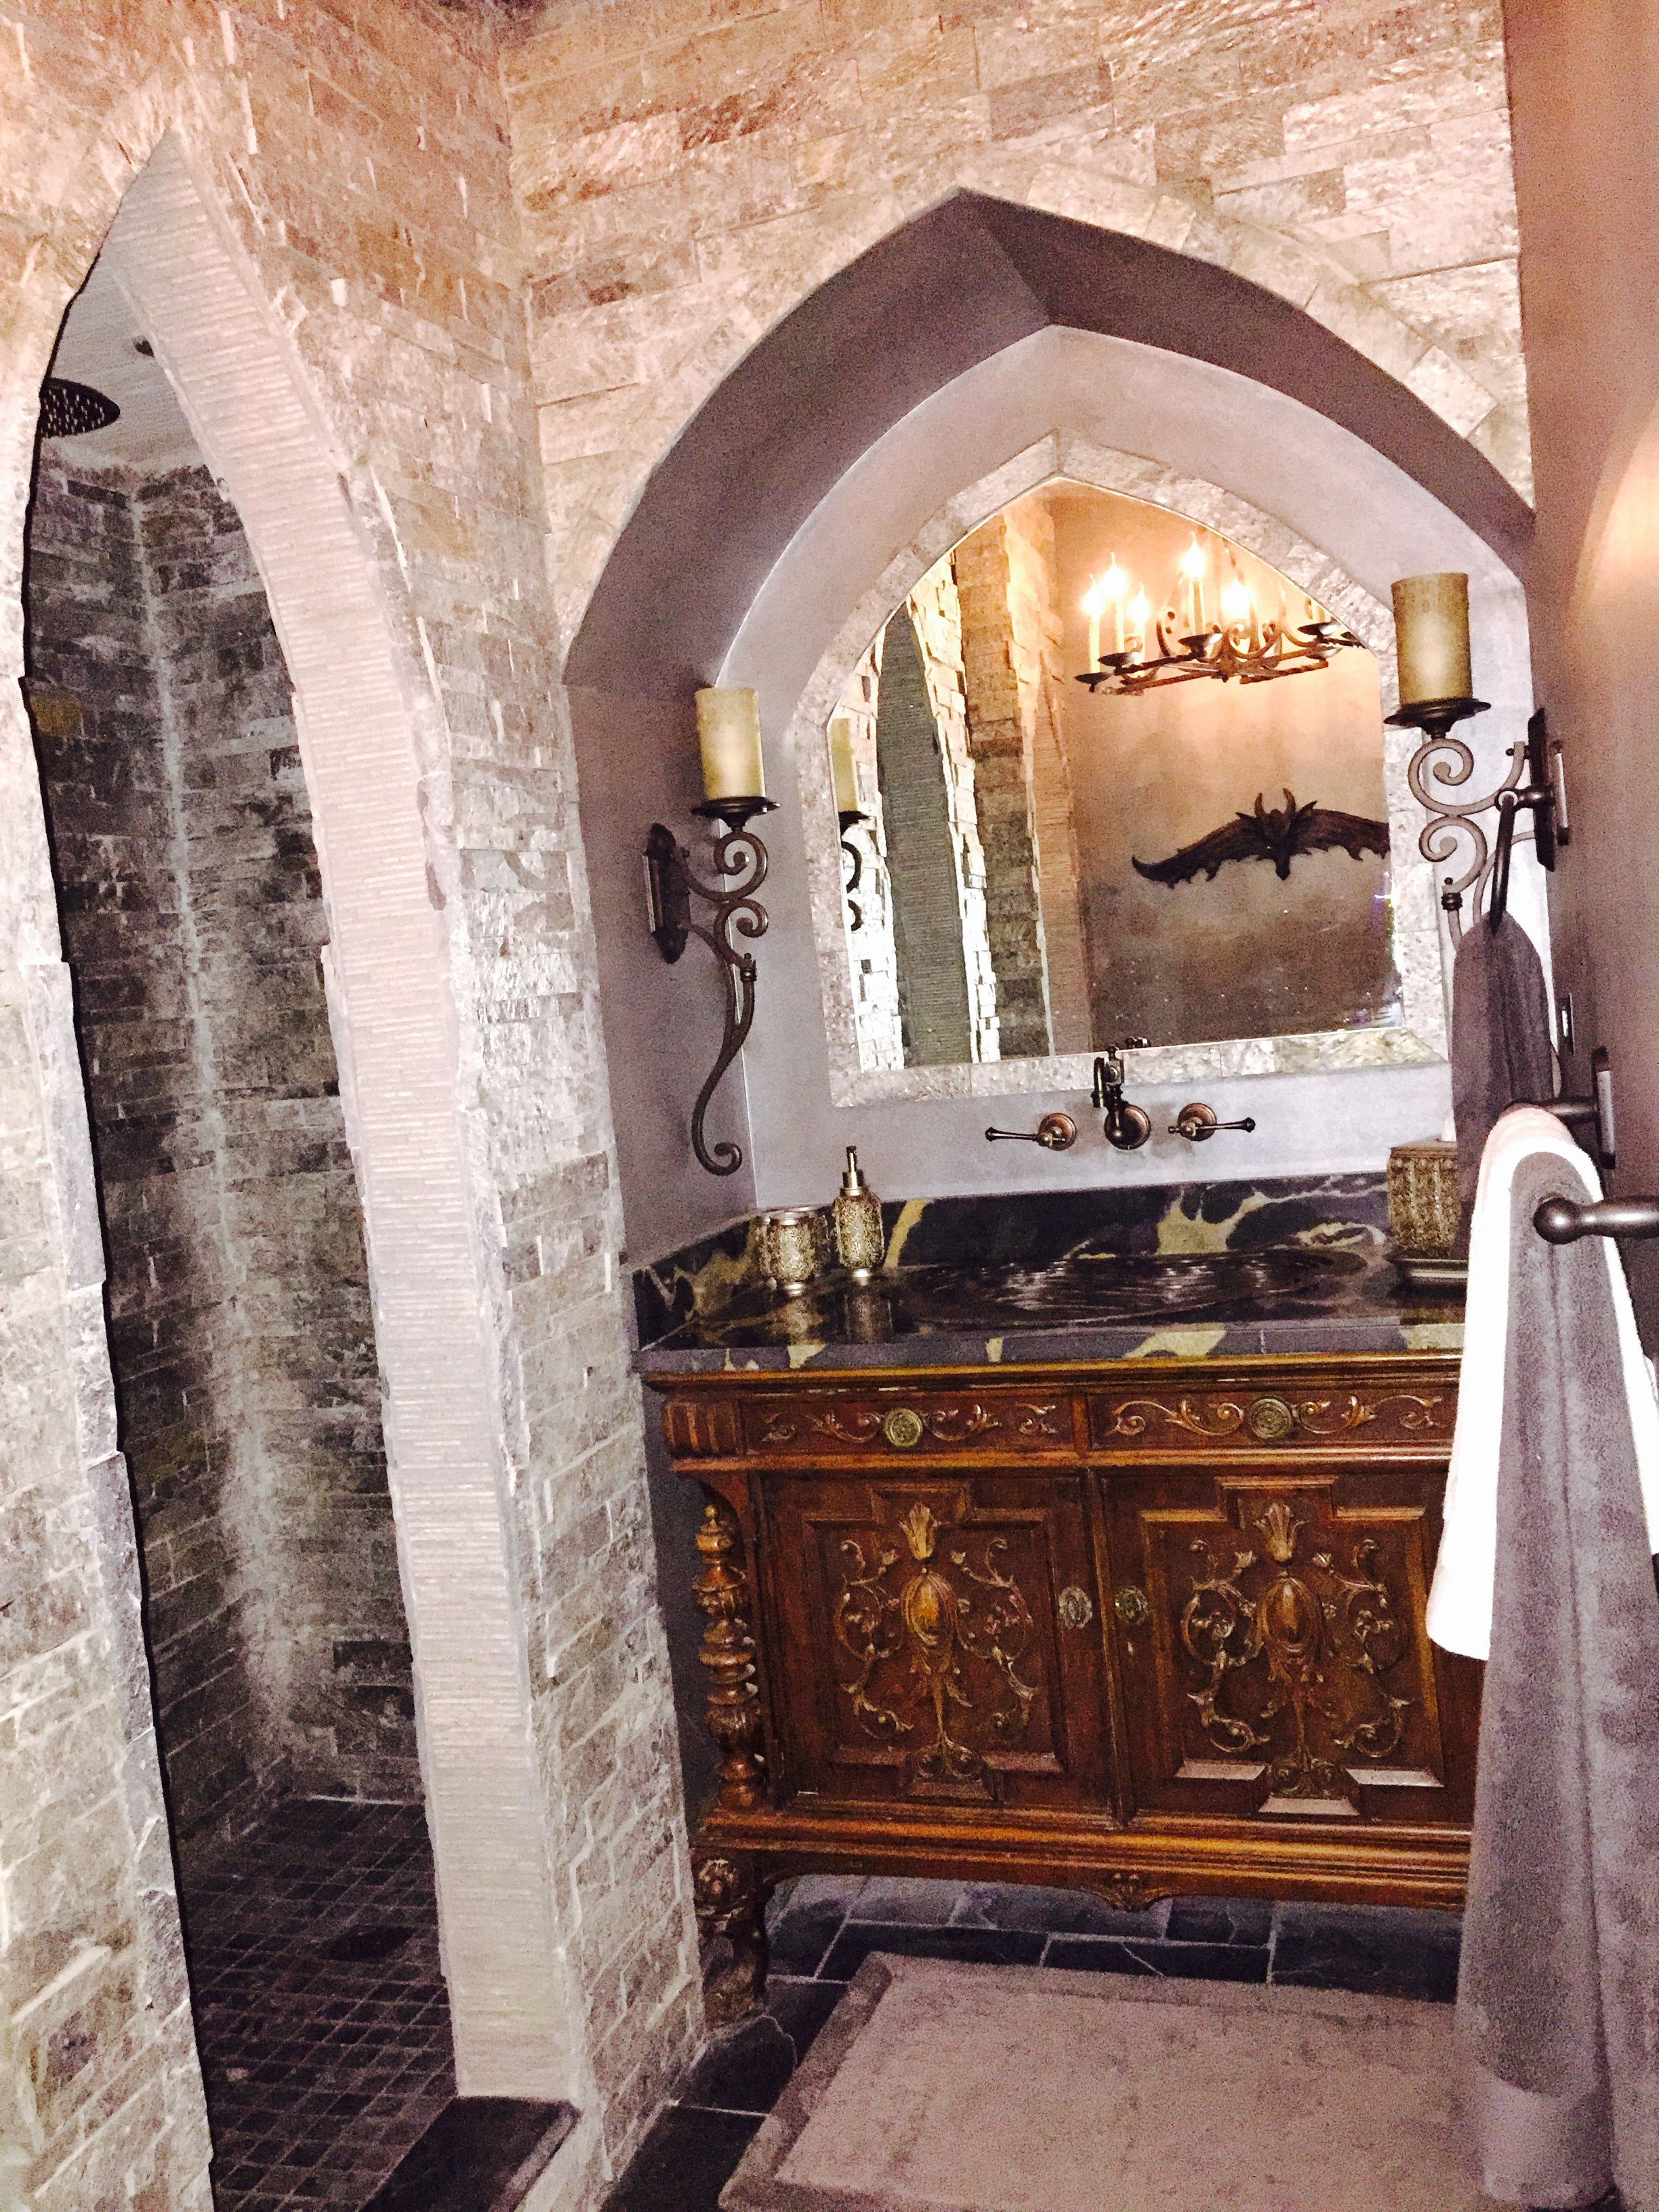 Vanity Area In Our Old World Castle Bathroom With Archway Over Vanity And Arched Stone Entrance To Open Shower Castle House Bathroom Design Open Showers